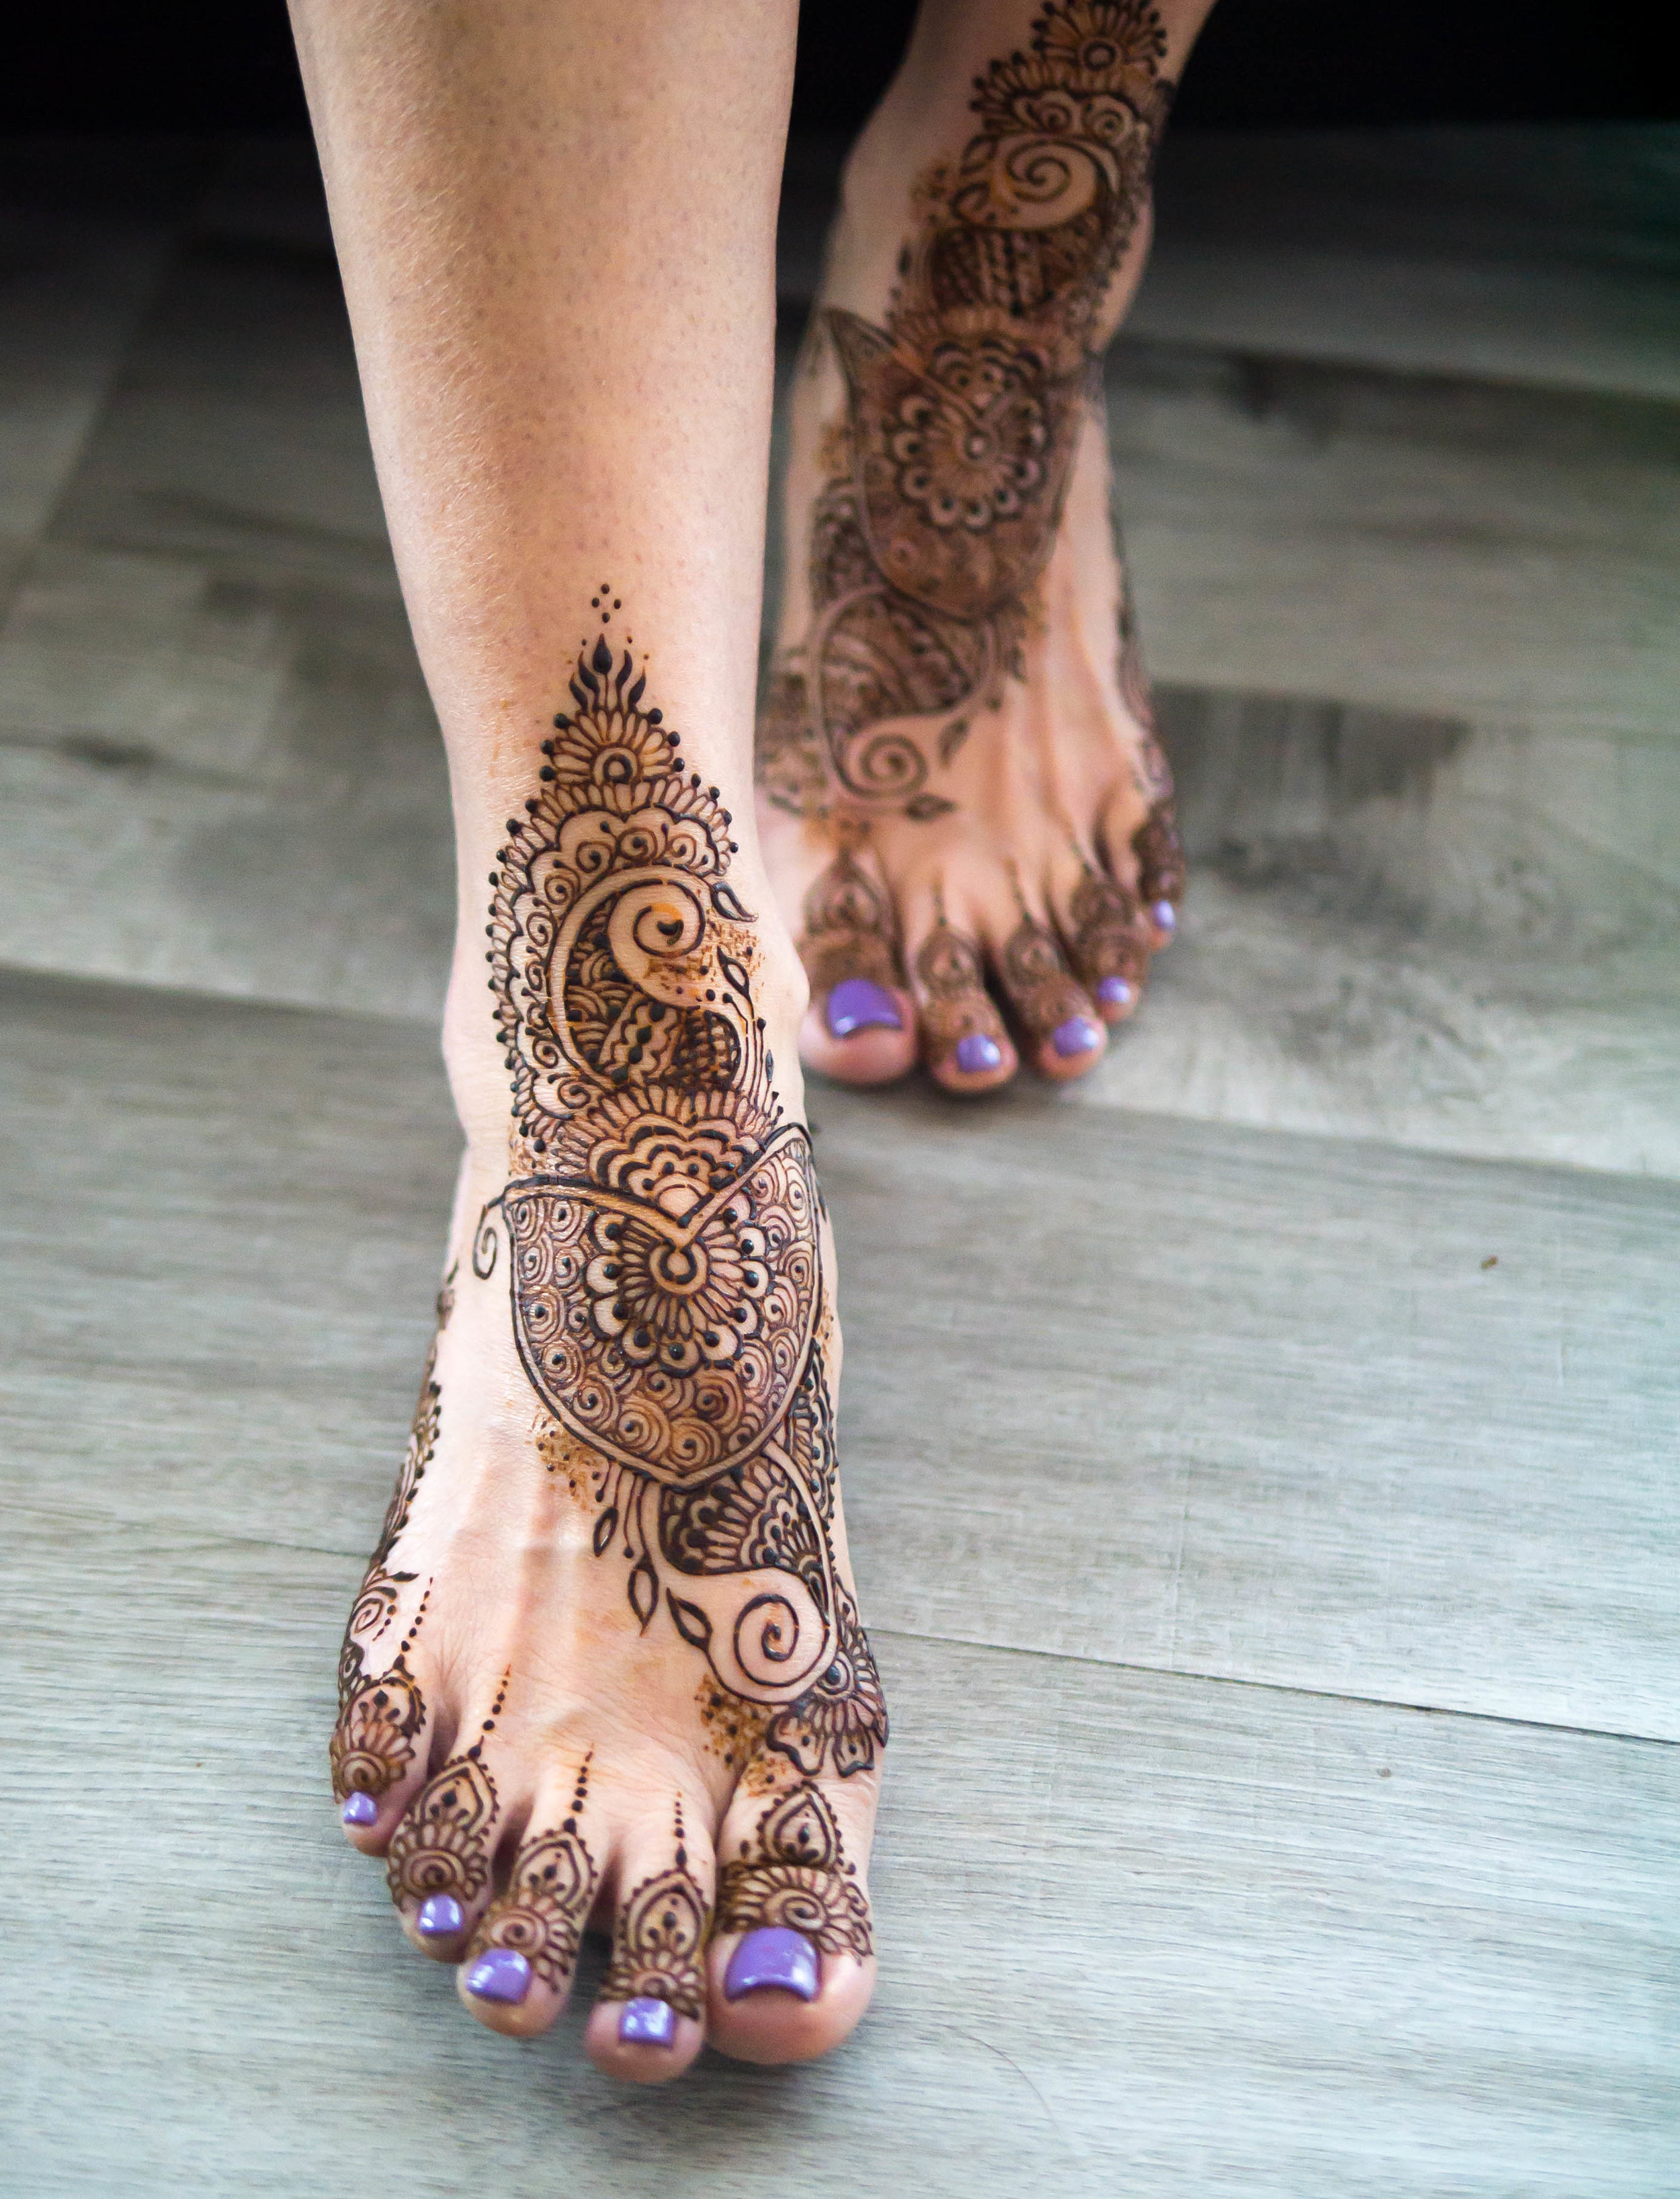 Indian Henna Class - In this half hour class you'll learn the basics of drawing Indian henna designs, full of beautiful flowers, paisleys, vines and leaves. While the Henna Drawing class is not a prerequisite, it will help if you know the basics of how to use a henna cone to draw.Book this class now